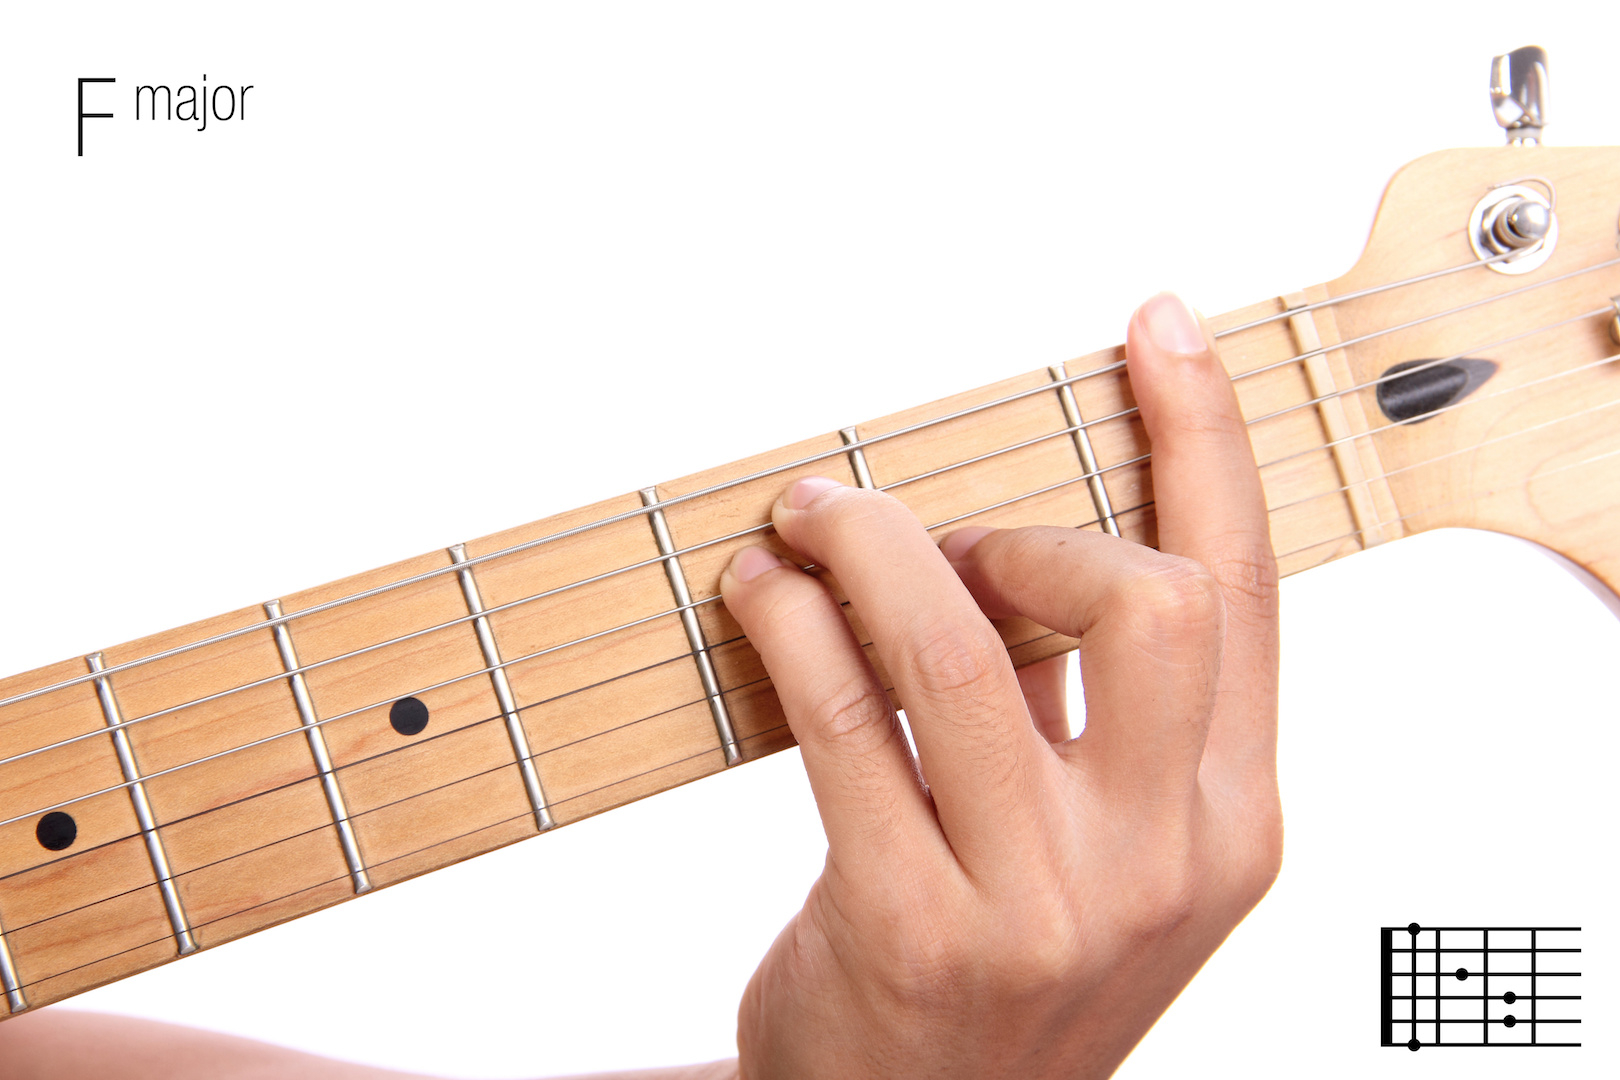 F Chord On Guitar F Chord On Guitar History Relevance Chord Shapes Major Scale